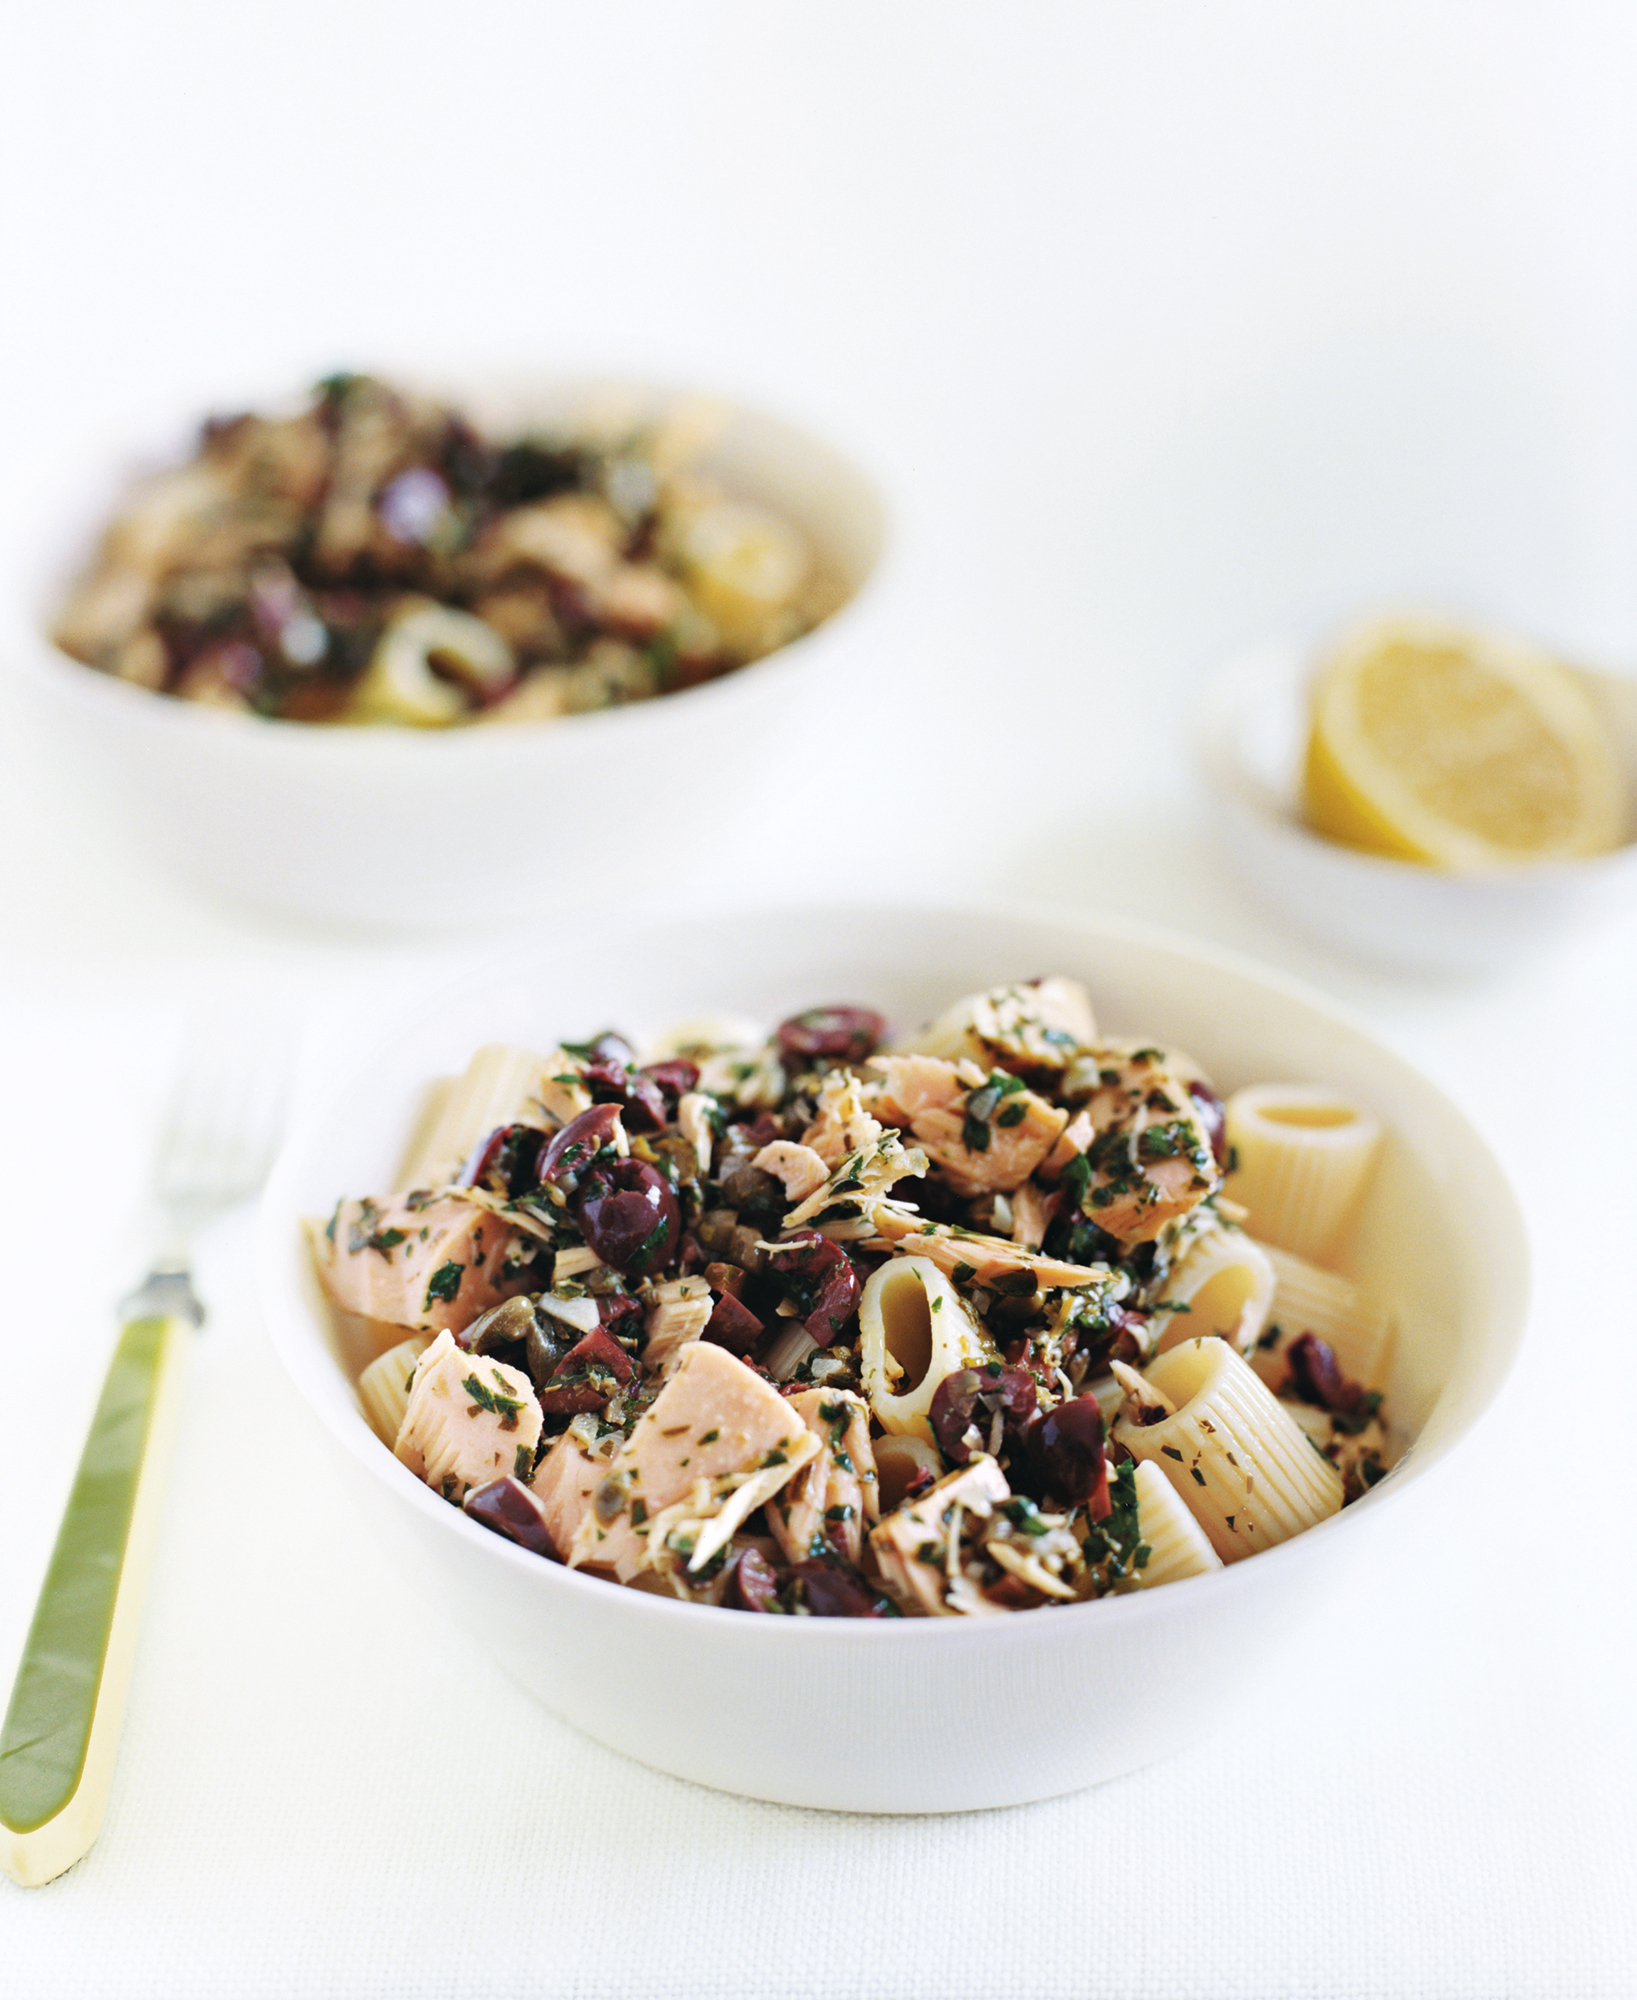 Pasta With Tuna and Black Olive Vinaigrette